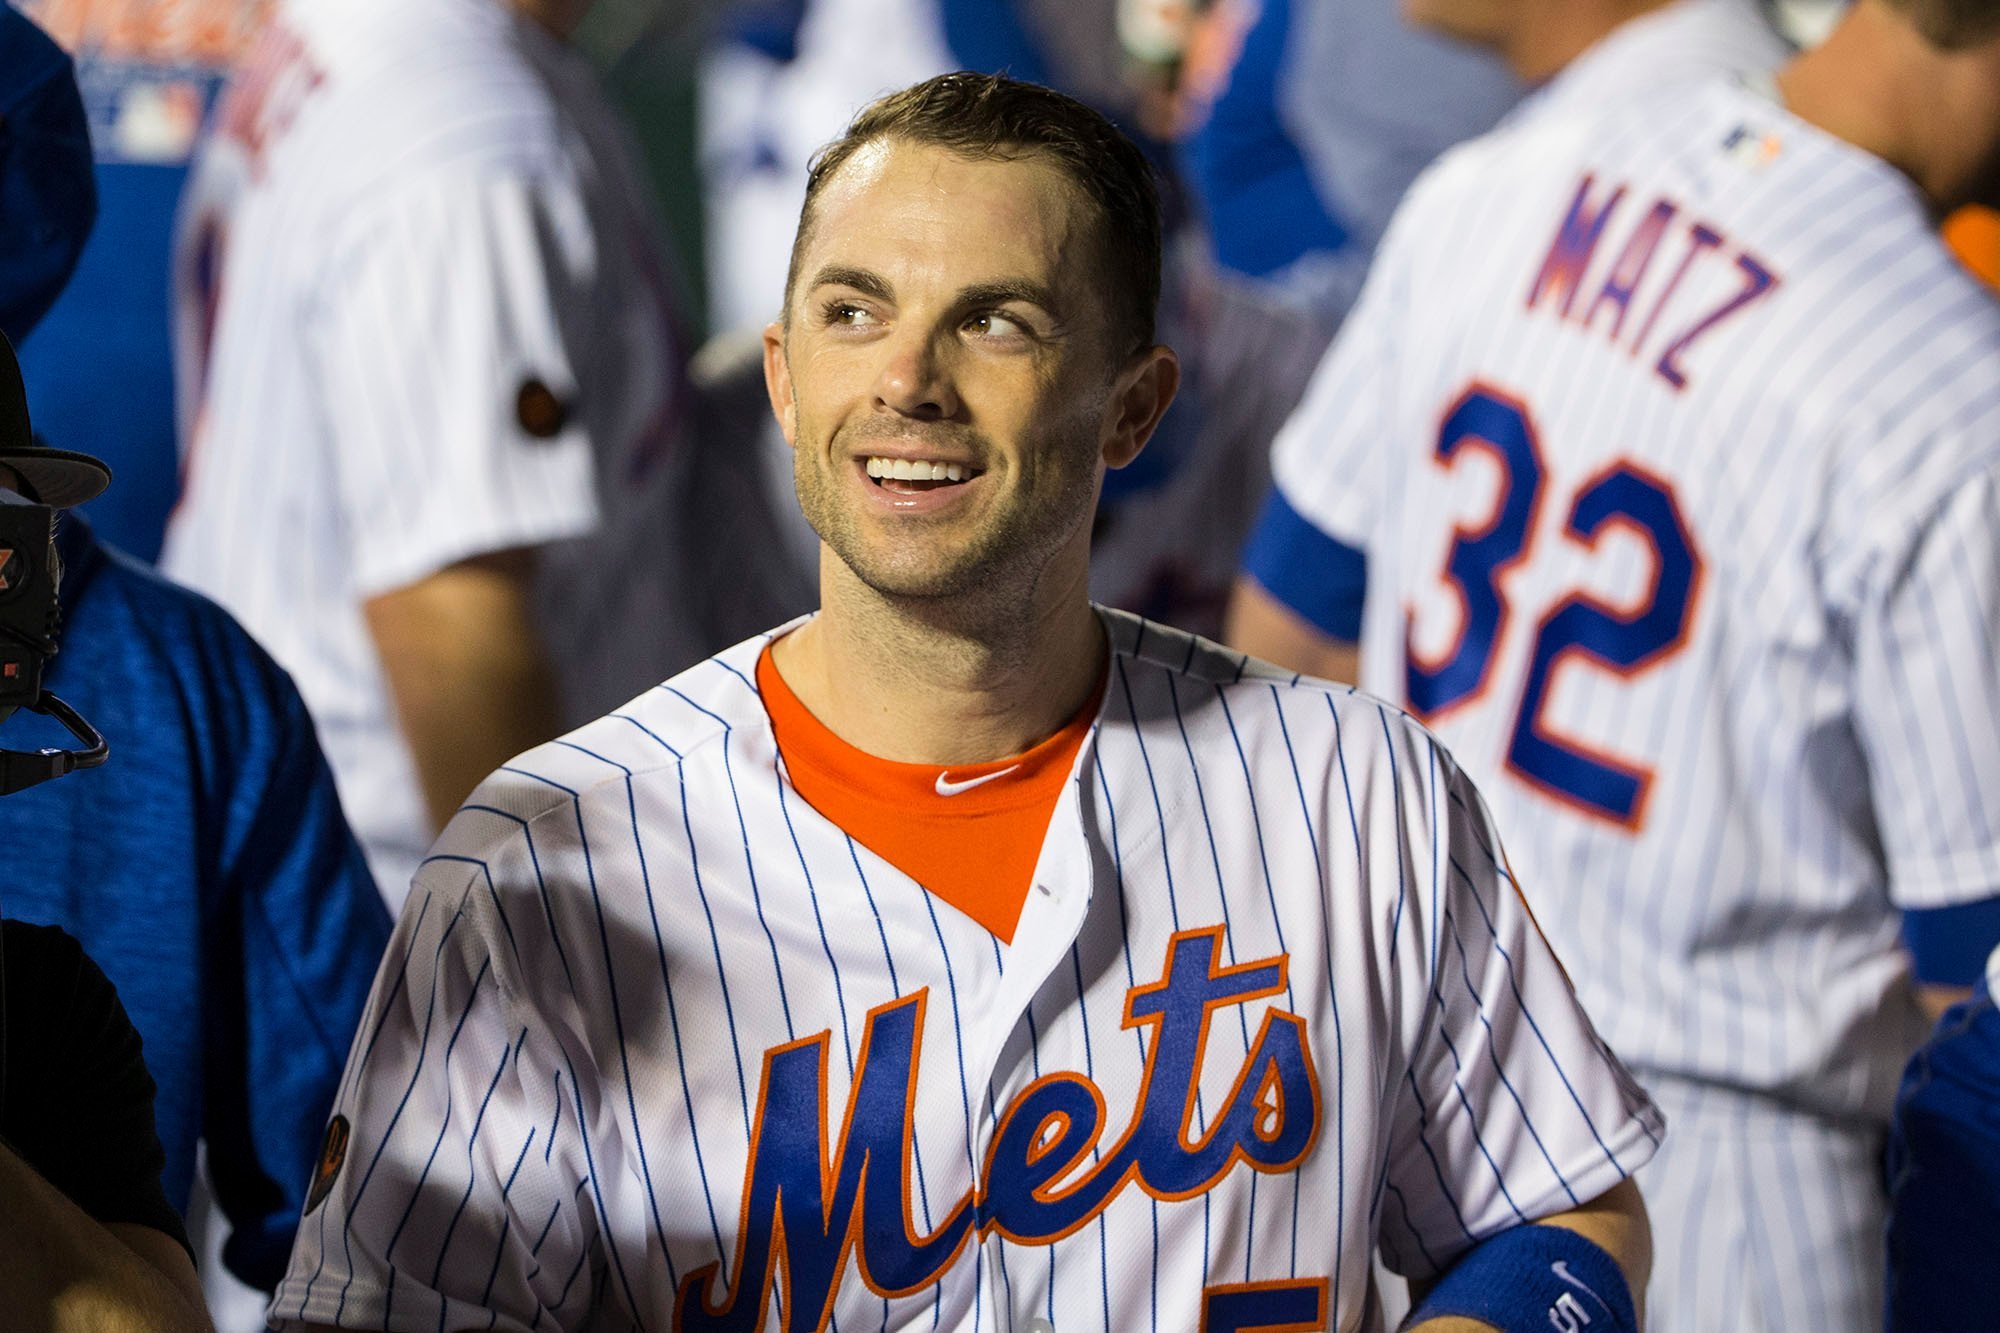 A look inside David Wright's new Mets reality